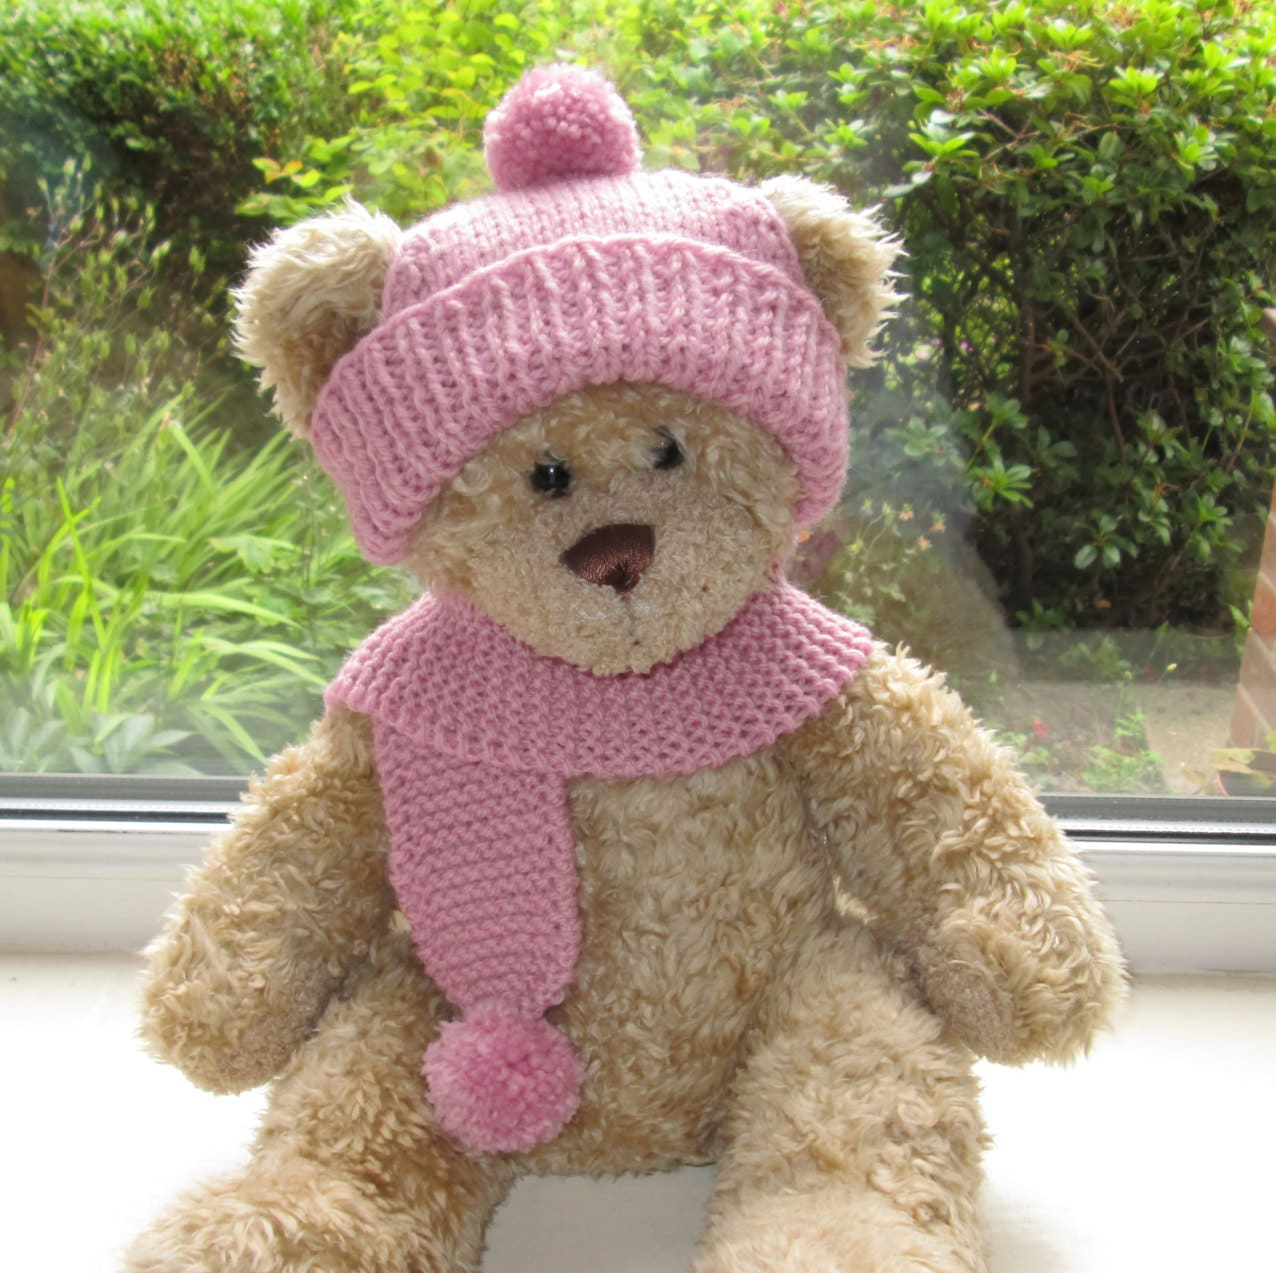 Knitting Clothes For Teddy Bears : Teddy bear clothes hand knitted aran bobble by